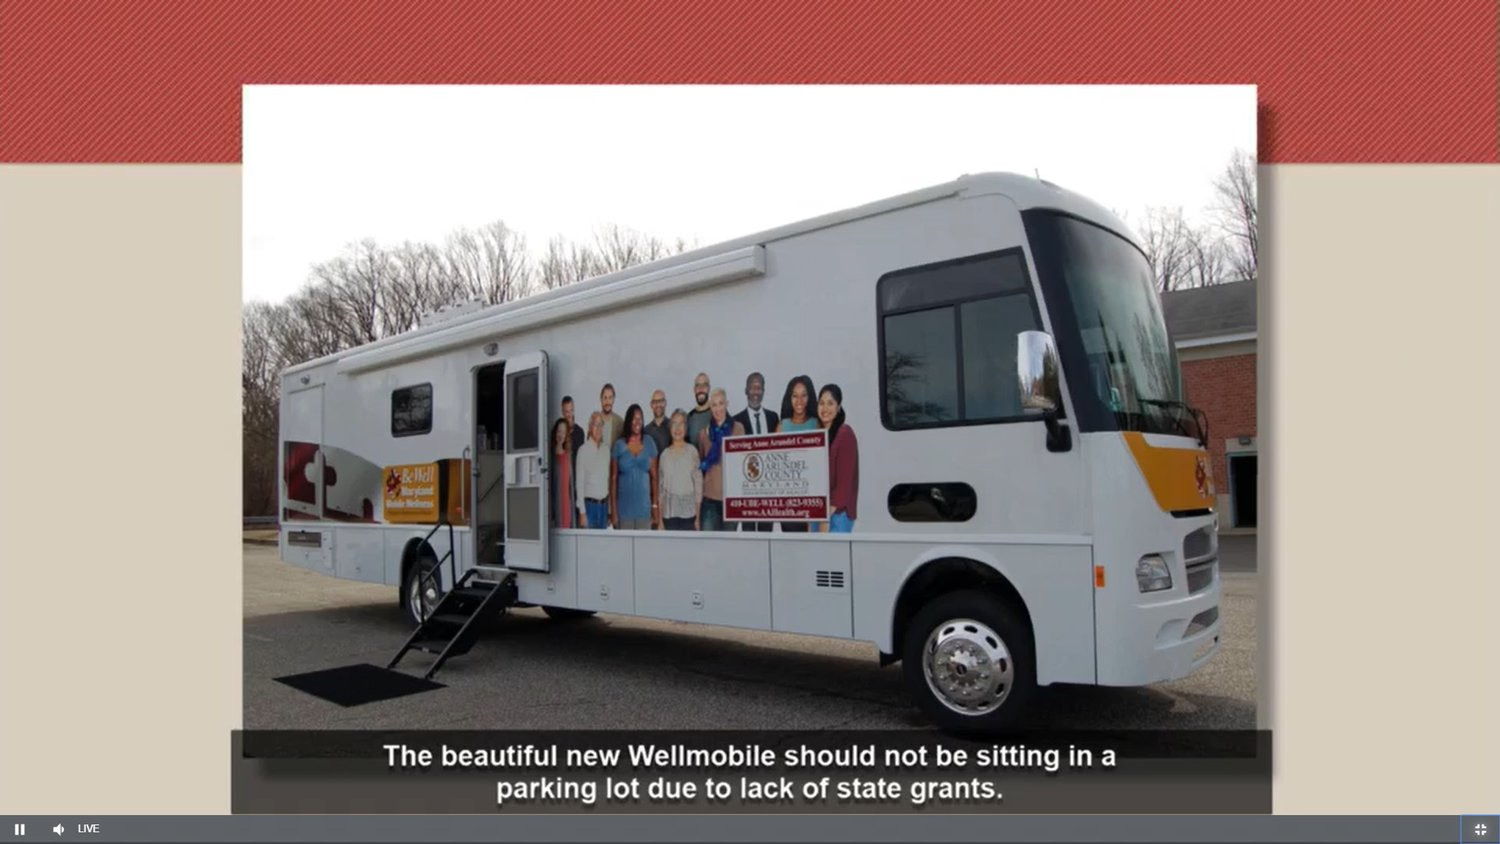 The county will also fund crisis response teams and the Wellmobile while continuing its search for outside funds.